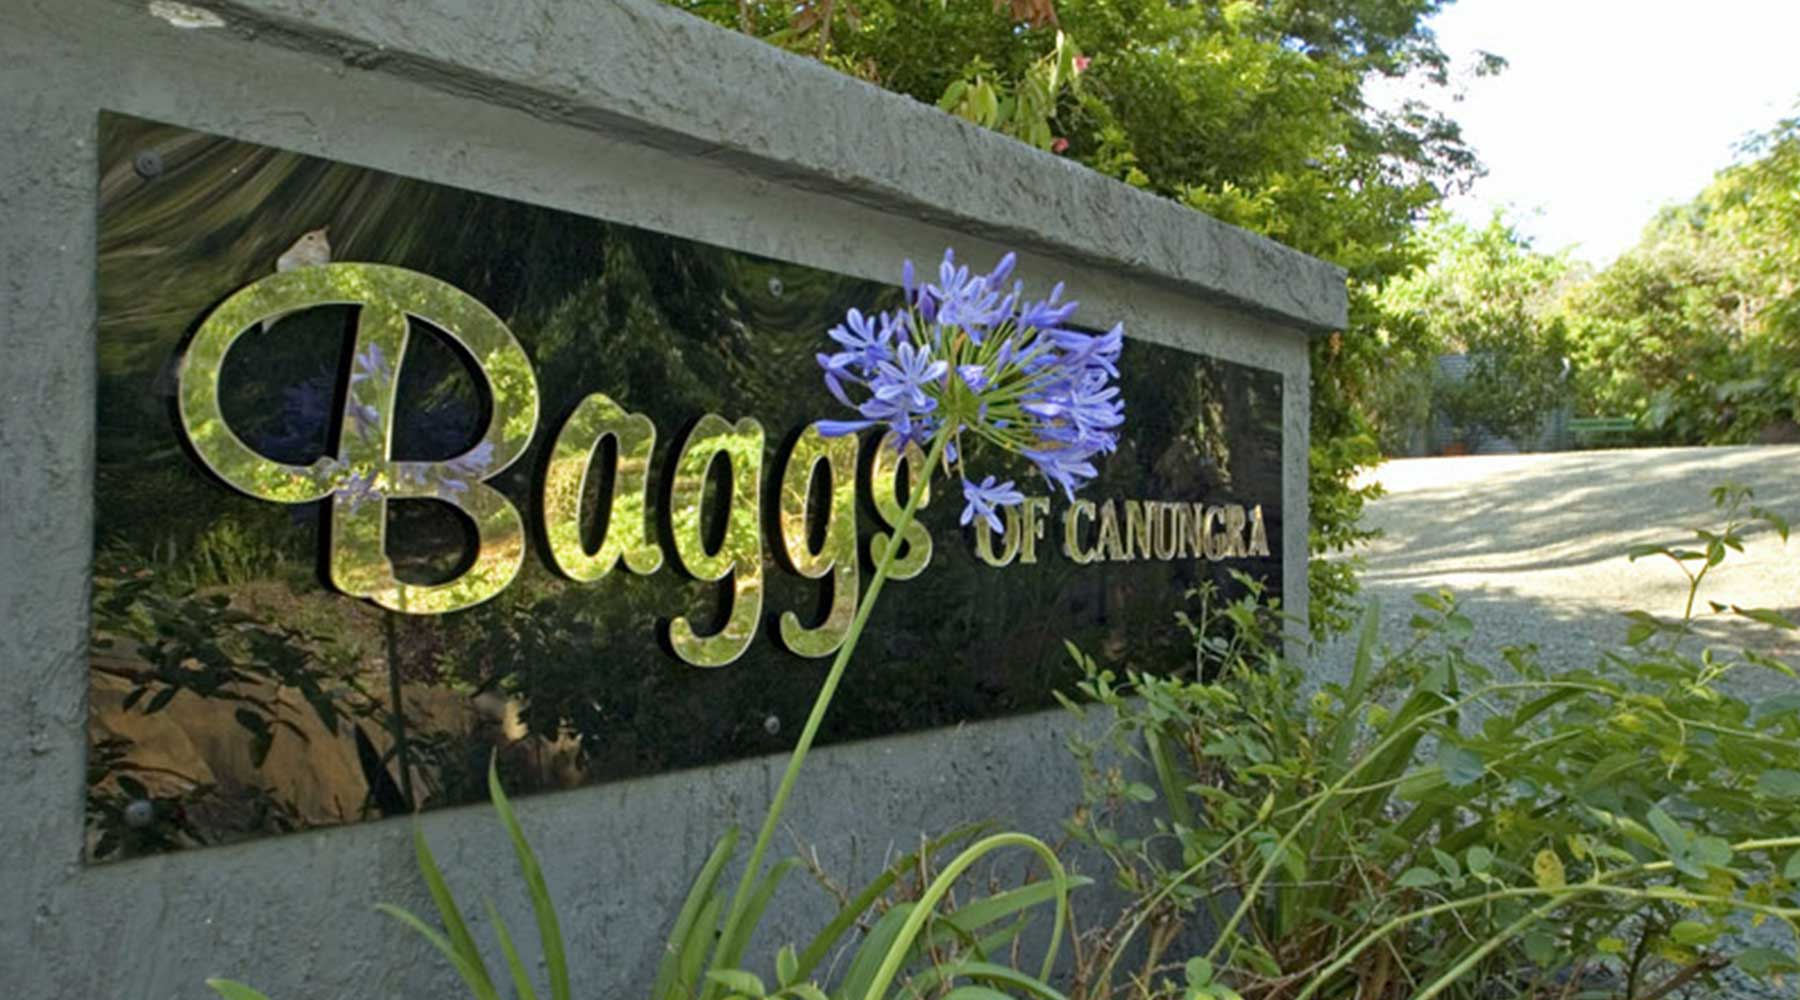 Baggs of Canungra